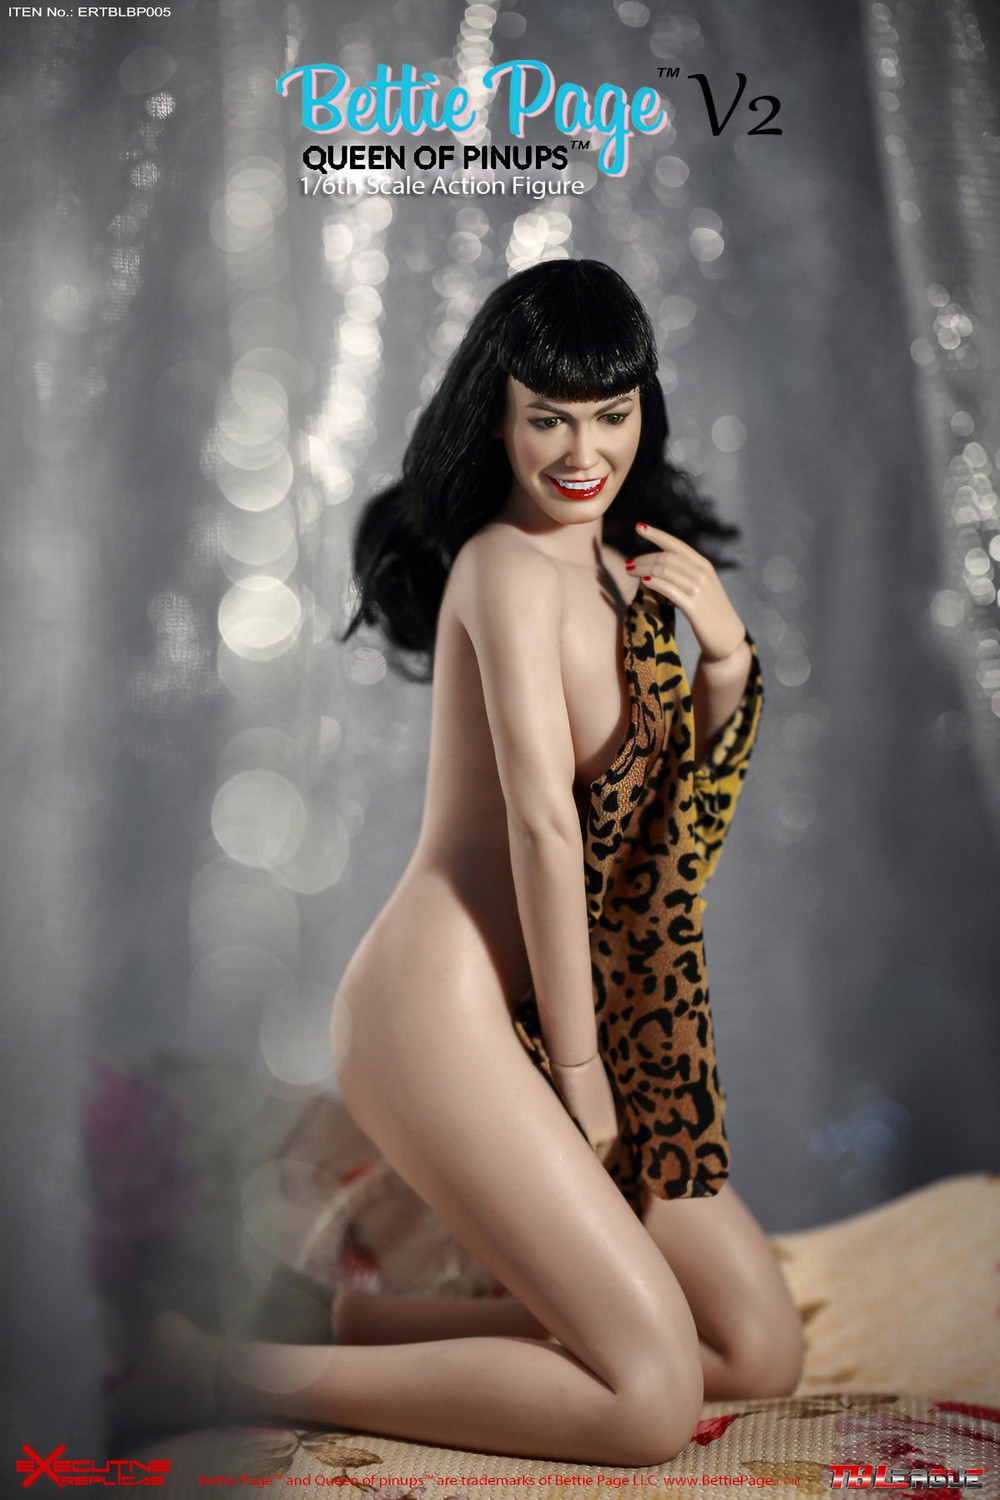 tbleague - NEW PRODUCT: Executive Replicas & TBLeague: 1/6 Queen of Pin-Ups, Betty Page/Bettie Page V2 action figure 08345110